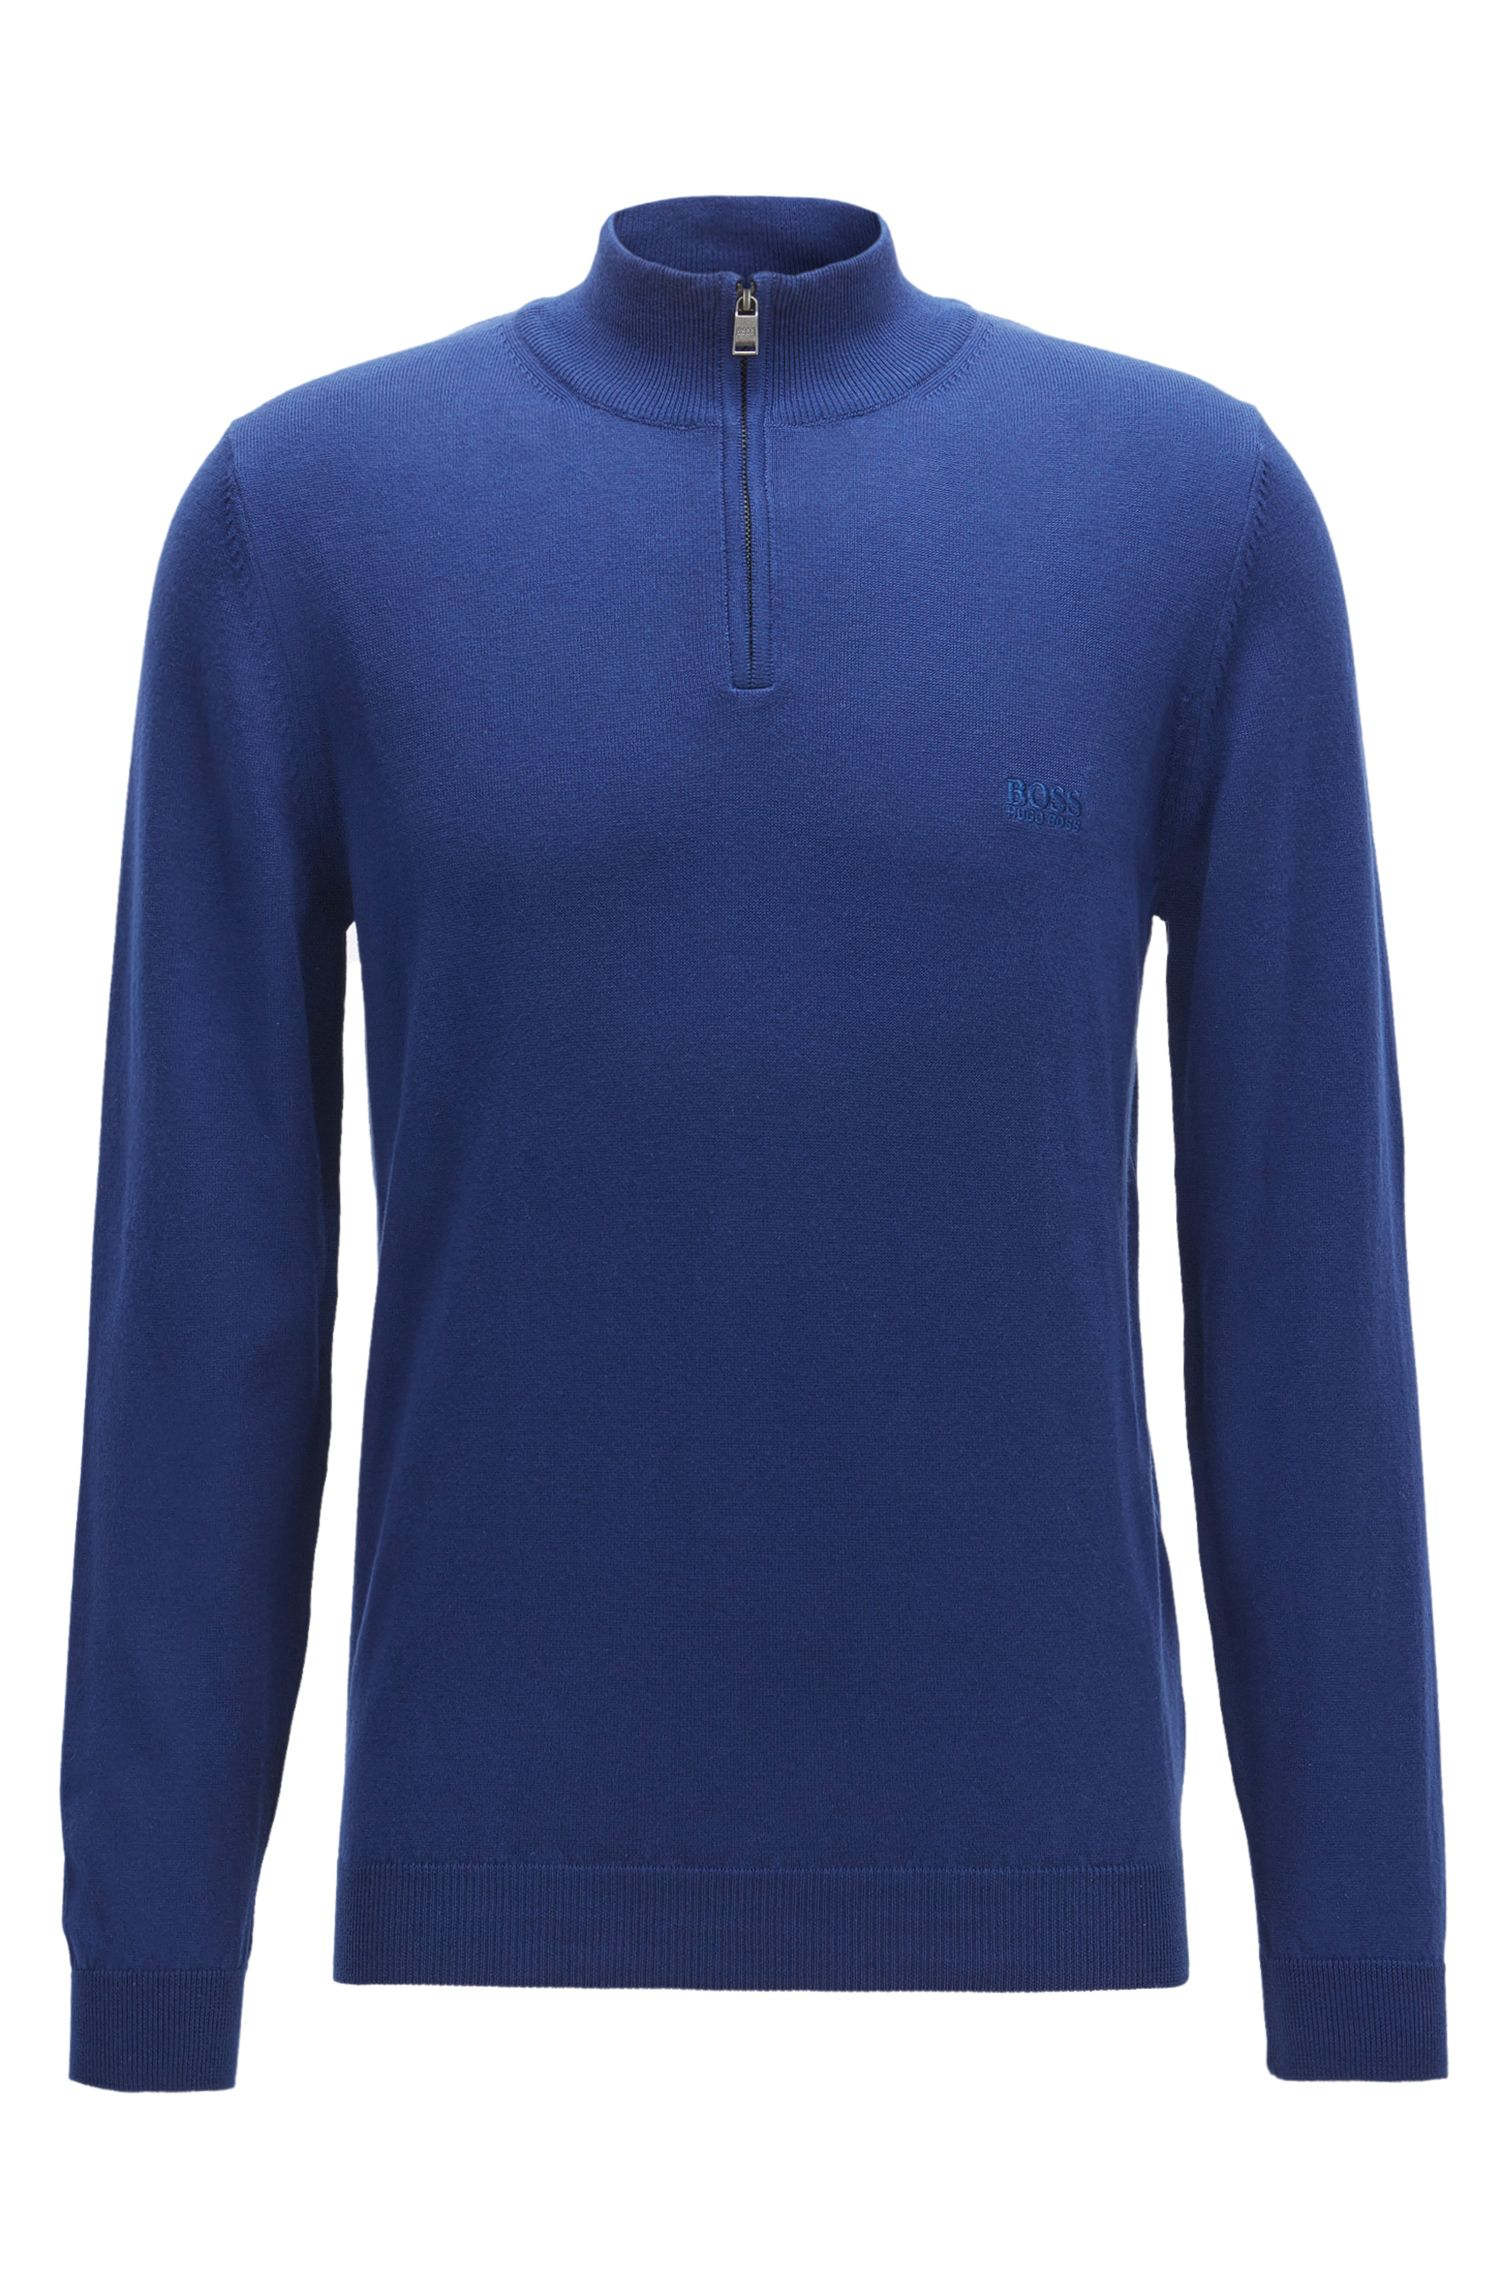 Regular-fit zip-neck sweater in Italian cotton